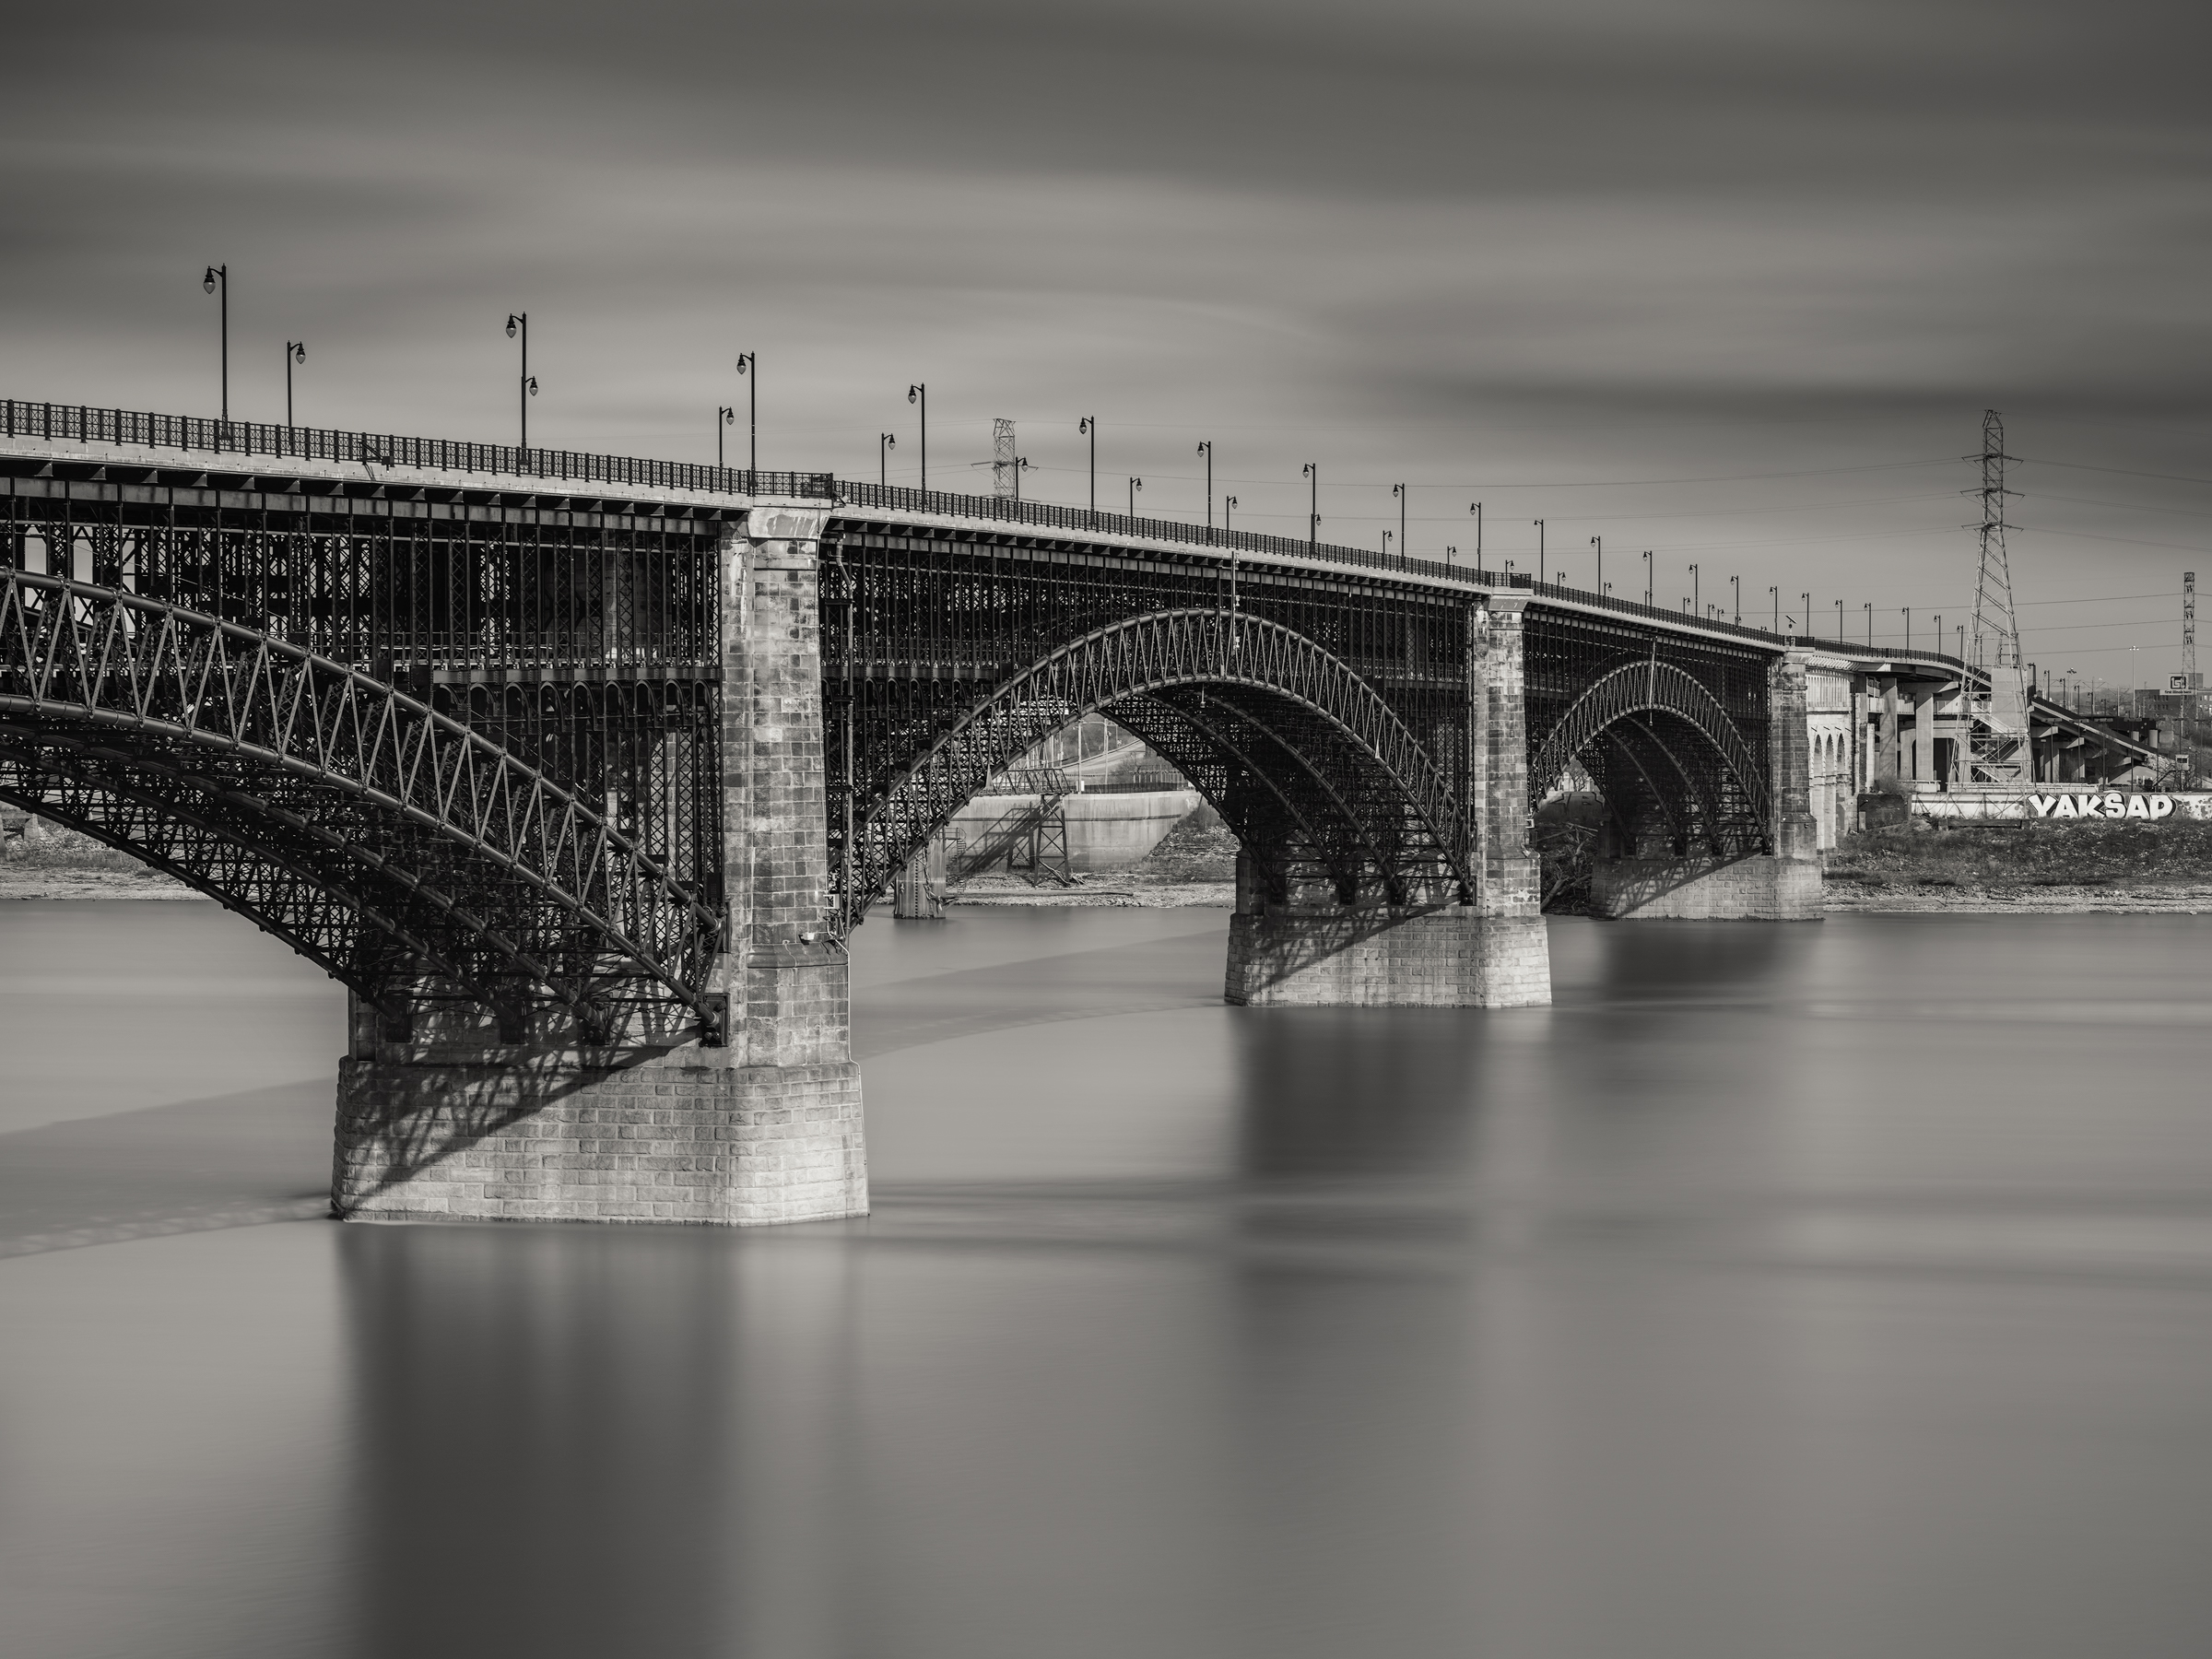 Eads Bridge and the mississippi, St Louis, MO - Fuji GFX50s and a Fujinon GF110mm f2 R WR | ISO 100 at f11 for 120 seconds.